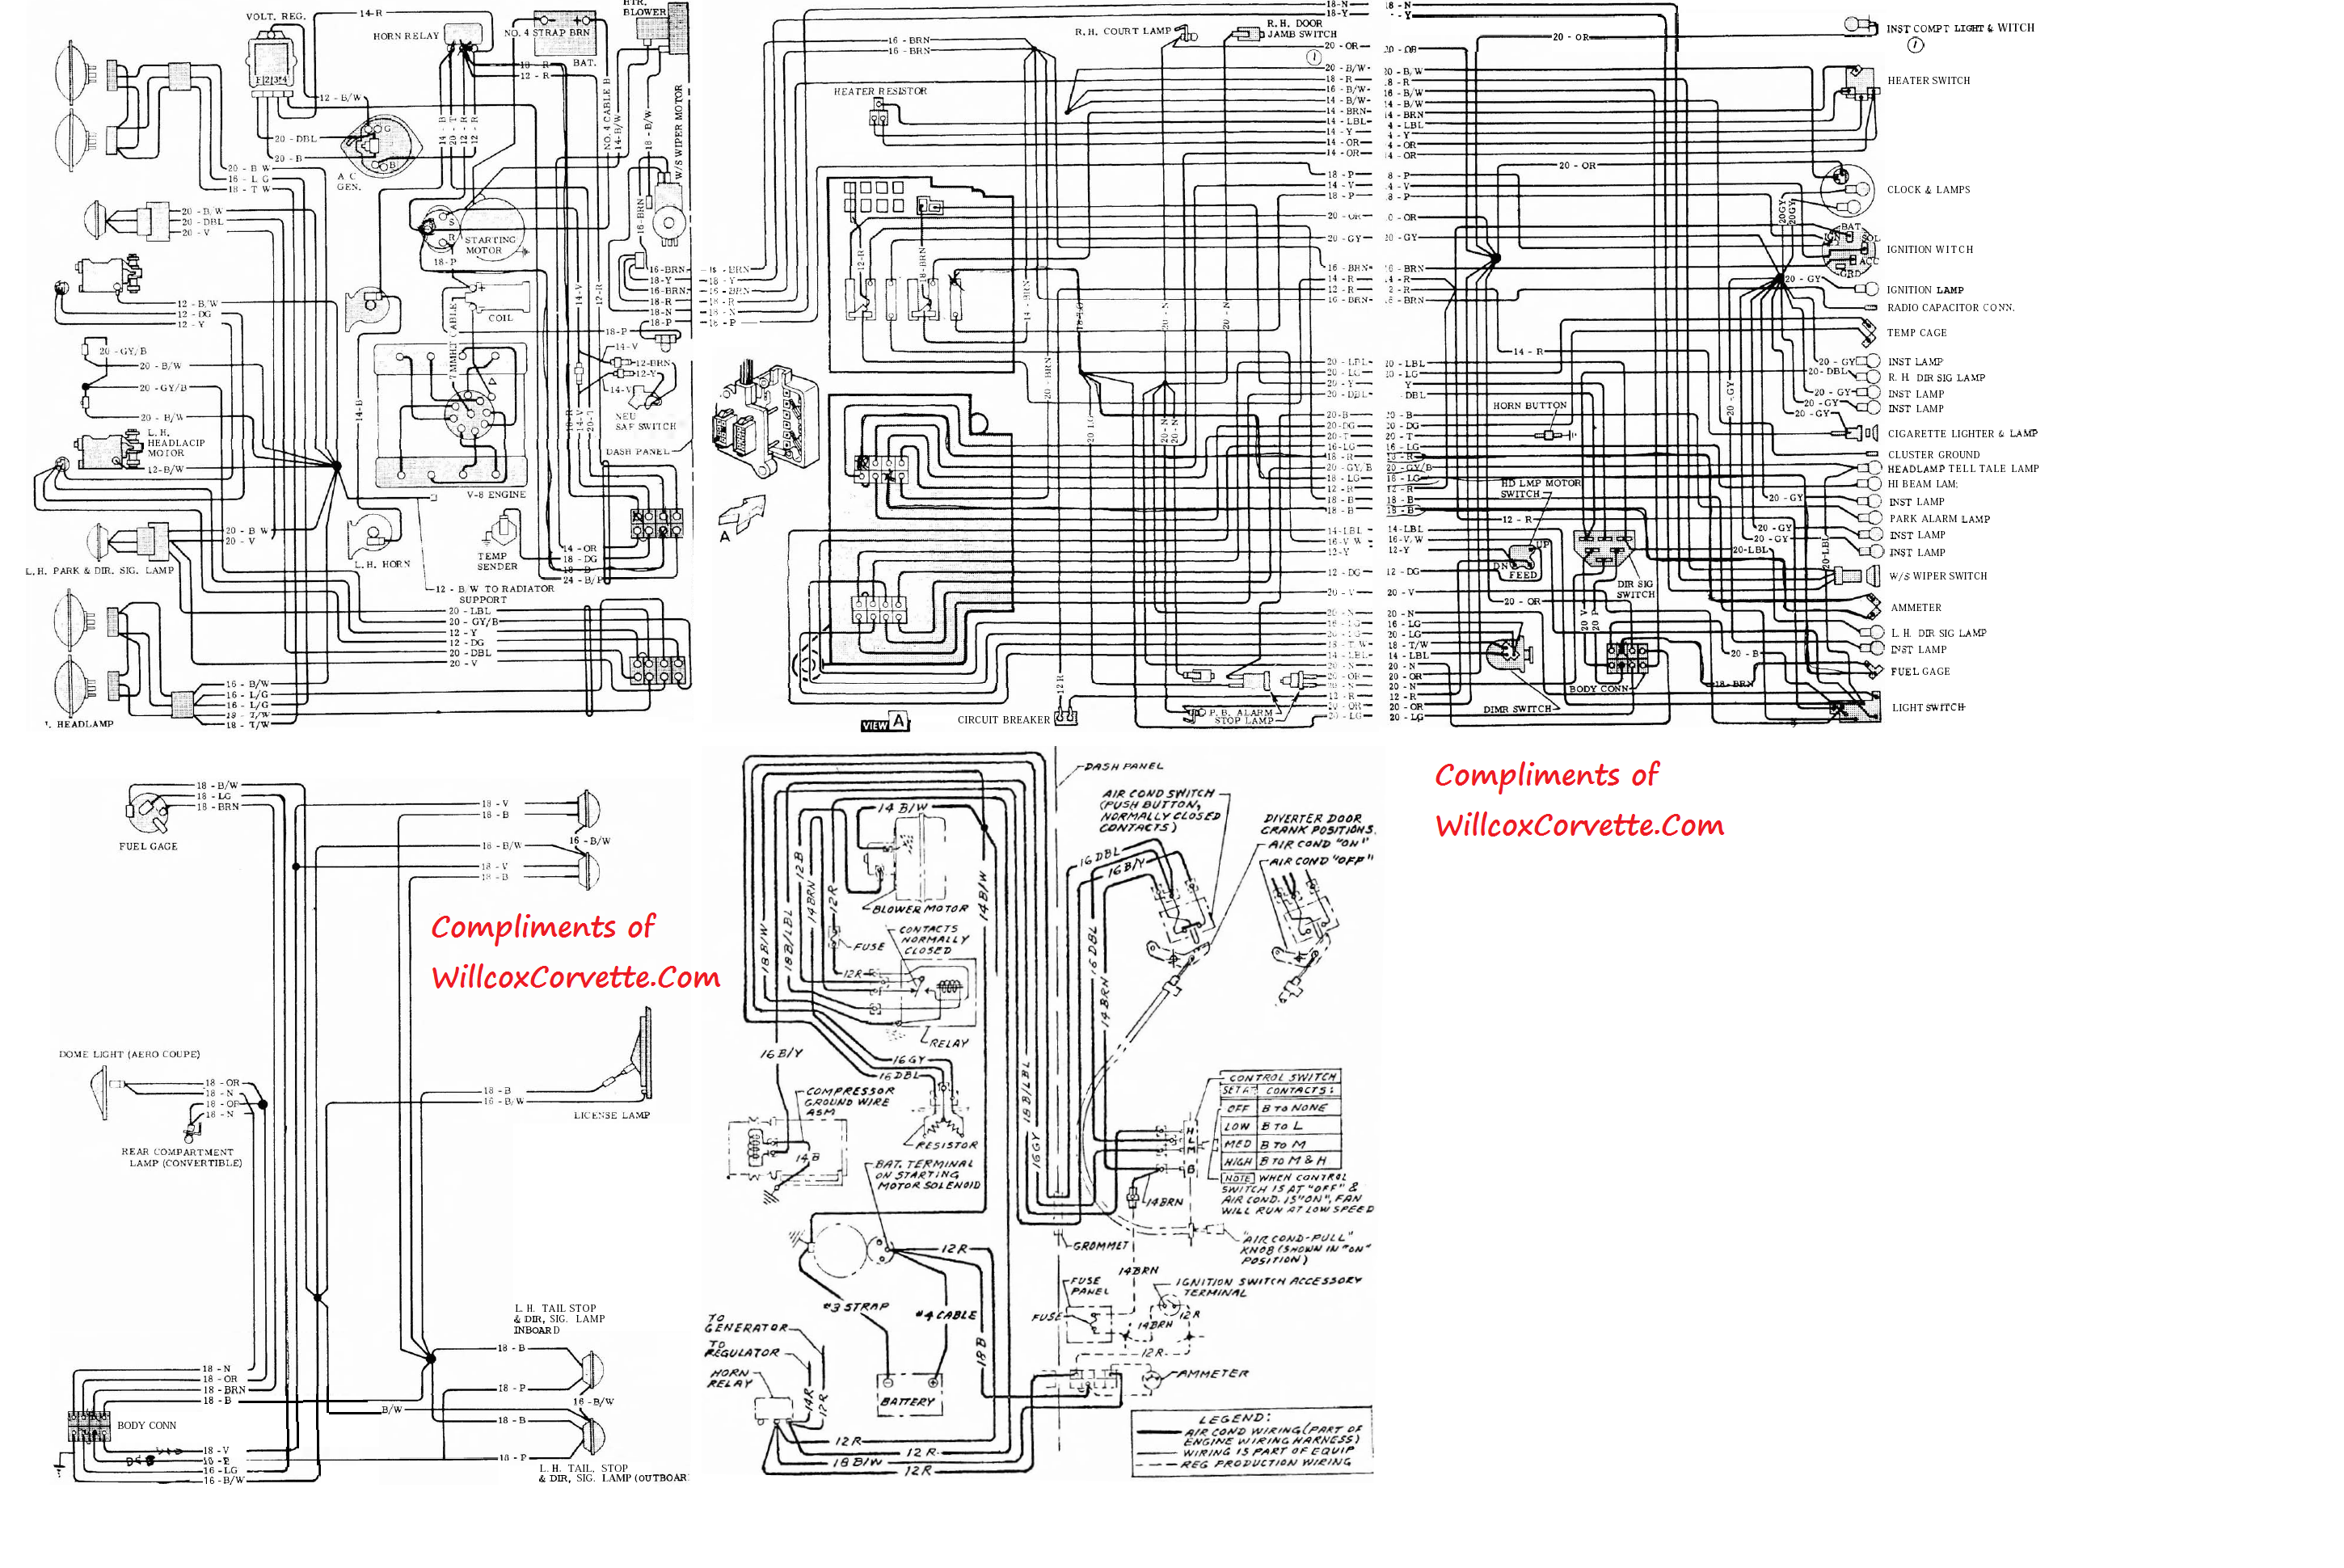 1985 Corvette Wiring Diagram : 28 Wiring Diagram Images